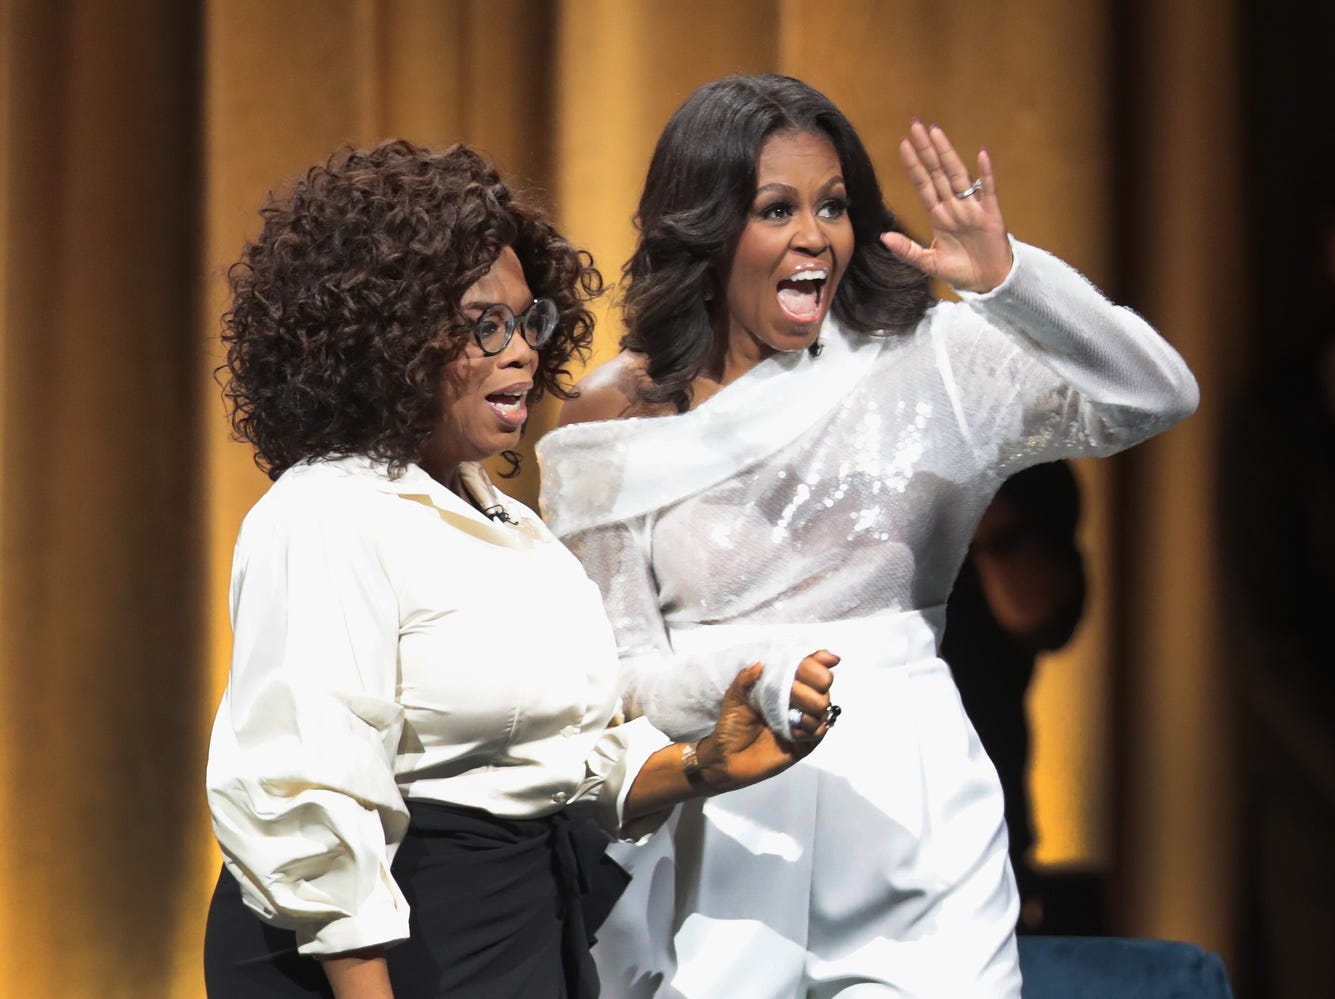 CHICAGO, IL - NOVEMBER 13:  Oprah Winfrey introduces former first lady Michelle Obama as she kicks off her 'Becoming'  arena book tour on November 13, 2018 in Chicago, Illinois. In the book, which was released today, Obama describes her journey from Chicago's South Side to the White House.  (Photo by Scott Olson/Getty Images) ORG XMIT: 775256717 ORIG FILE ID: 1061264870